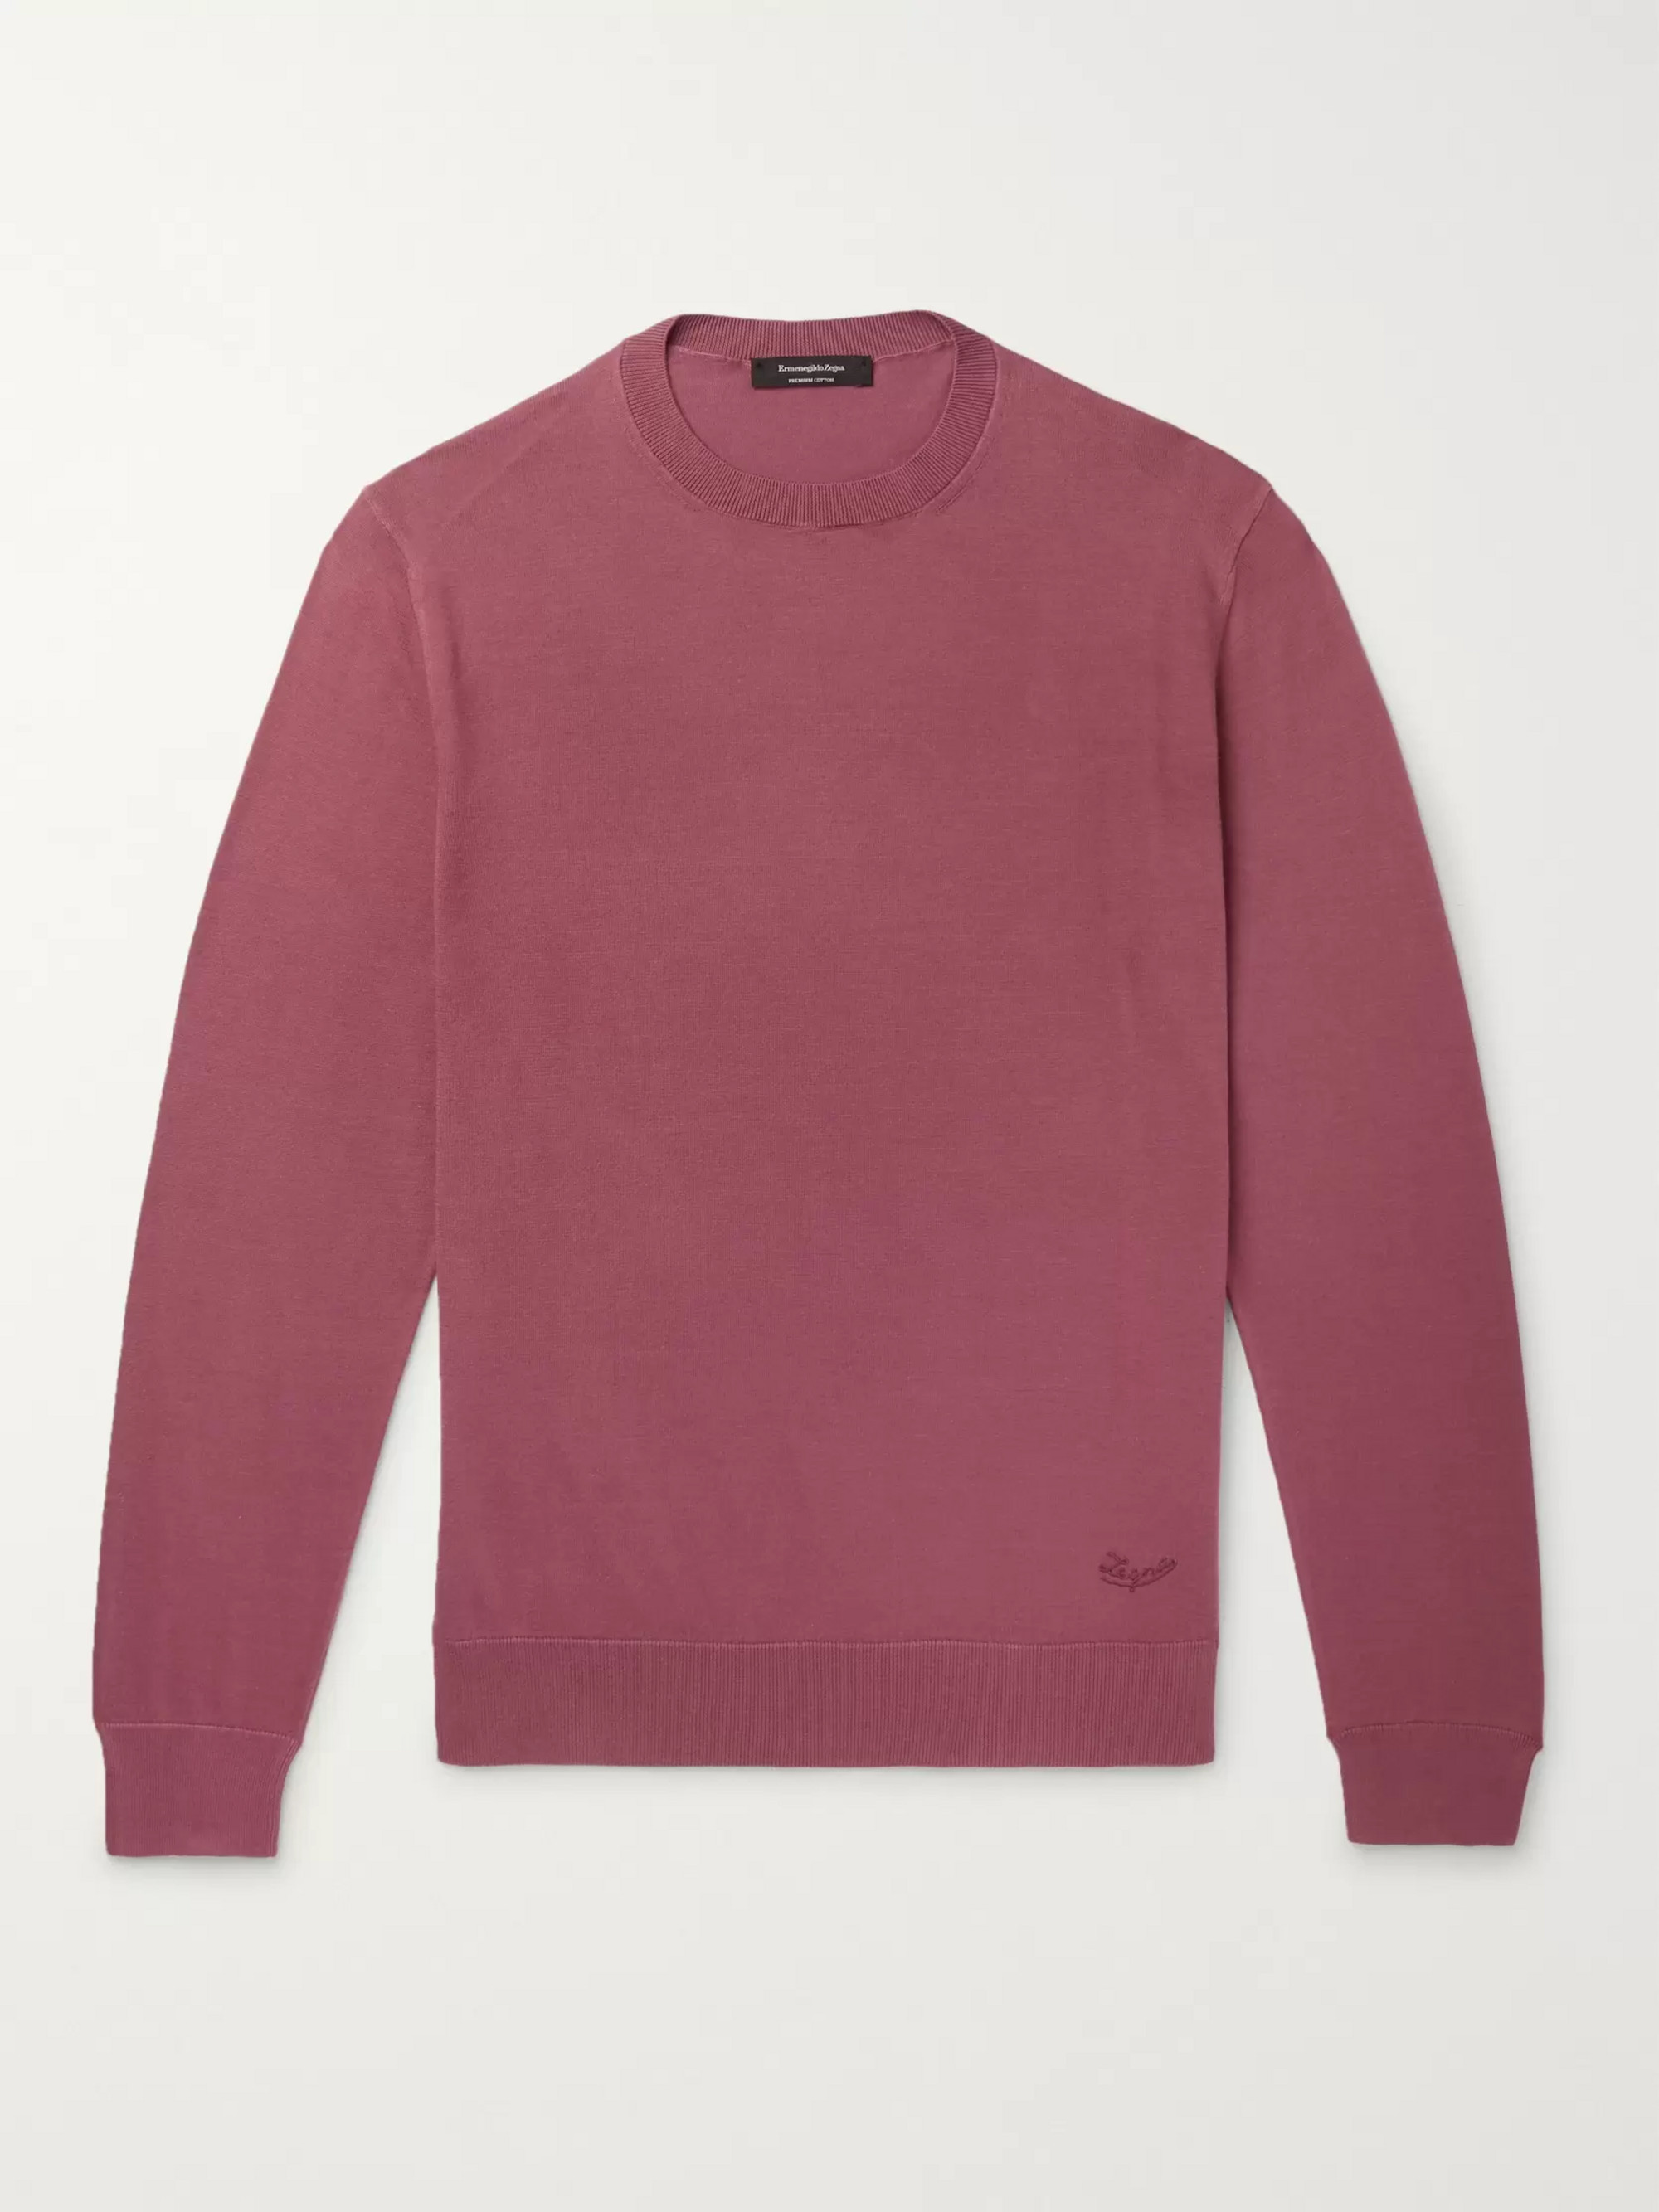 Ermenegildo Zegna Cotton Sweater